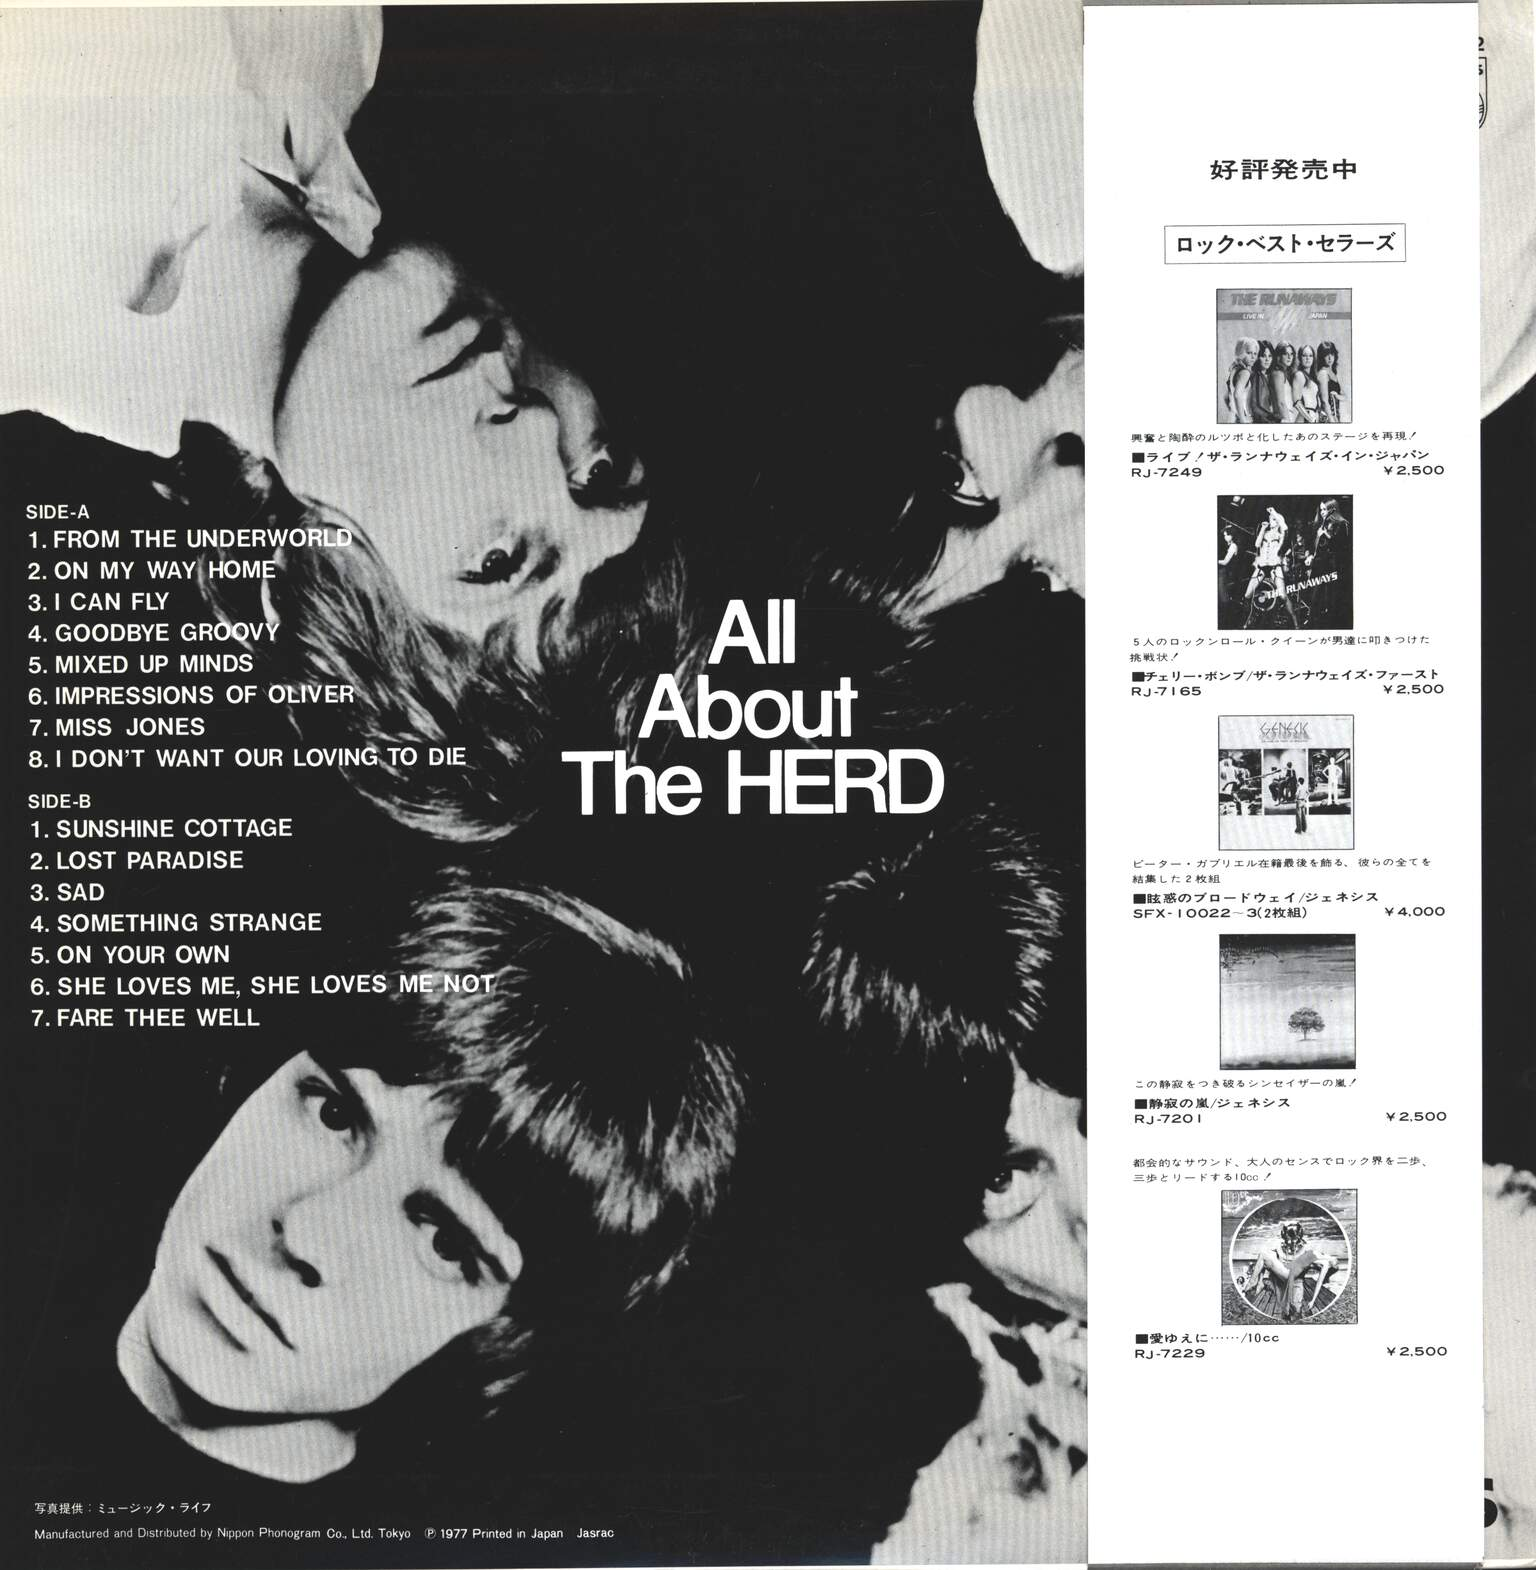 Herd: All About The Herd, LP (Vinyl)